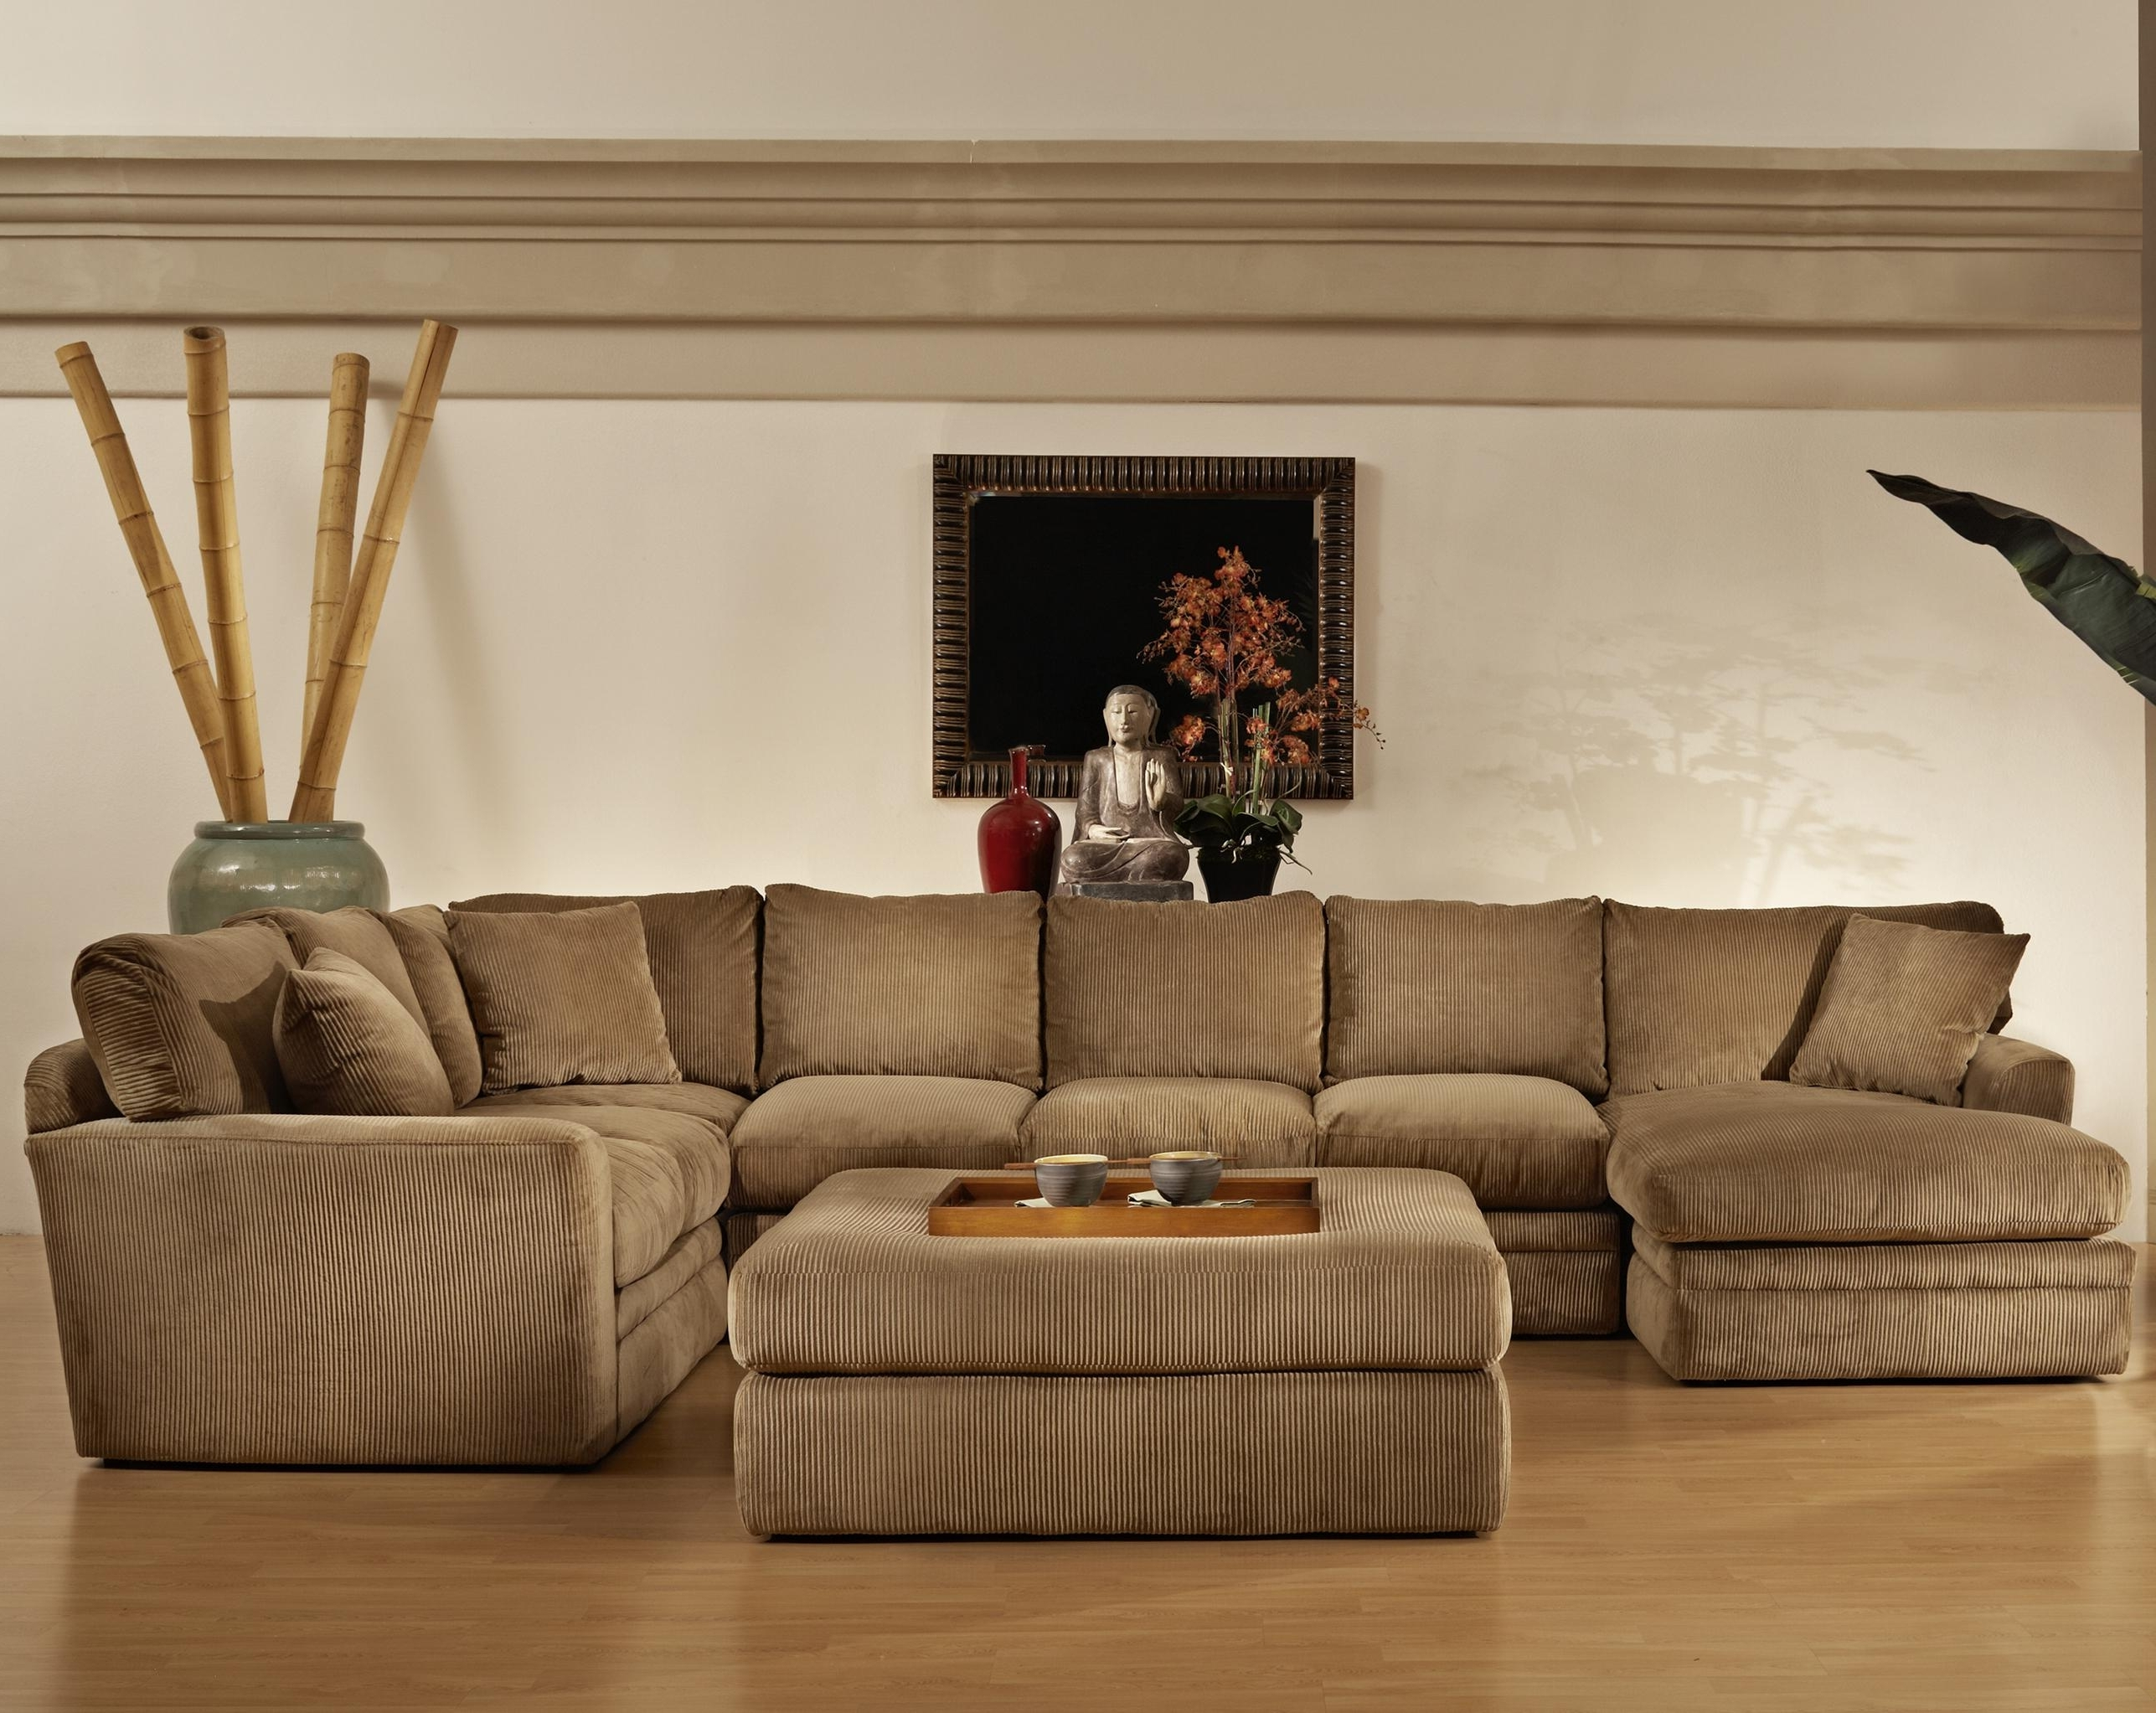 Most Popular Living Room Design: Comfy Sofa Sectionals For Home Interior Design Regarding Leather Sectional Sofas With Chaise (View 14 of 15)